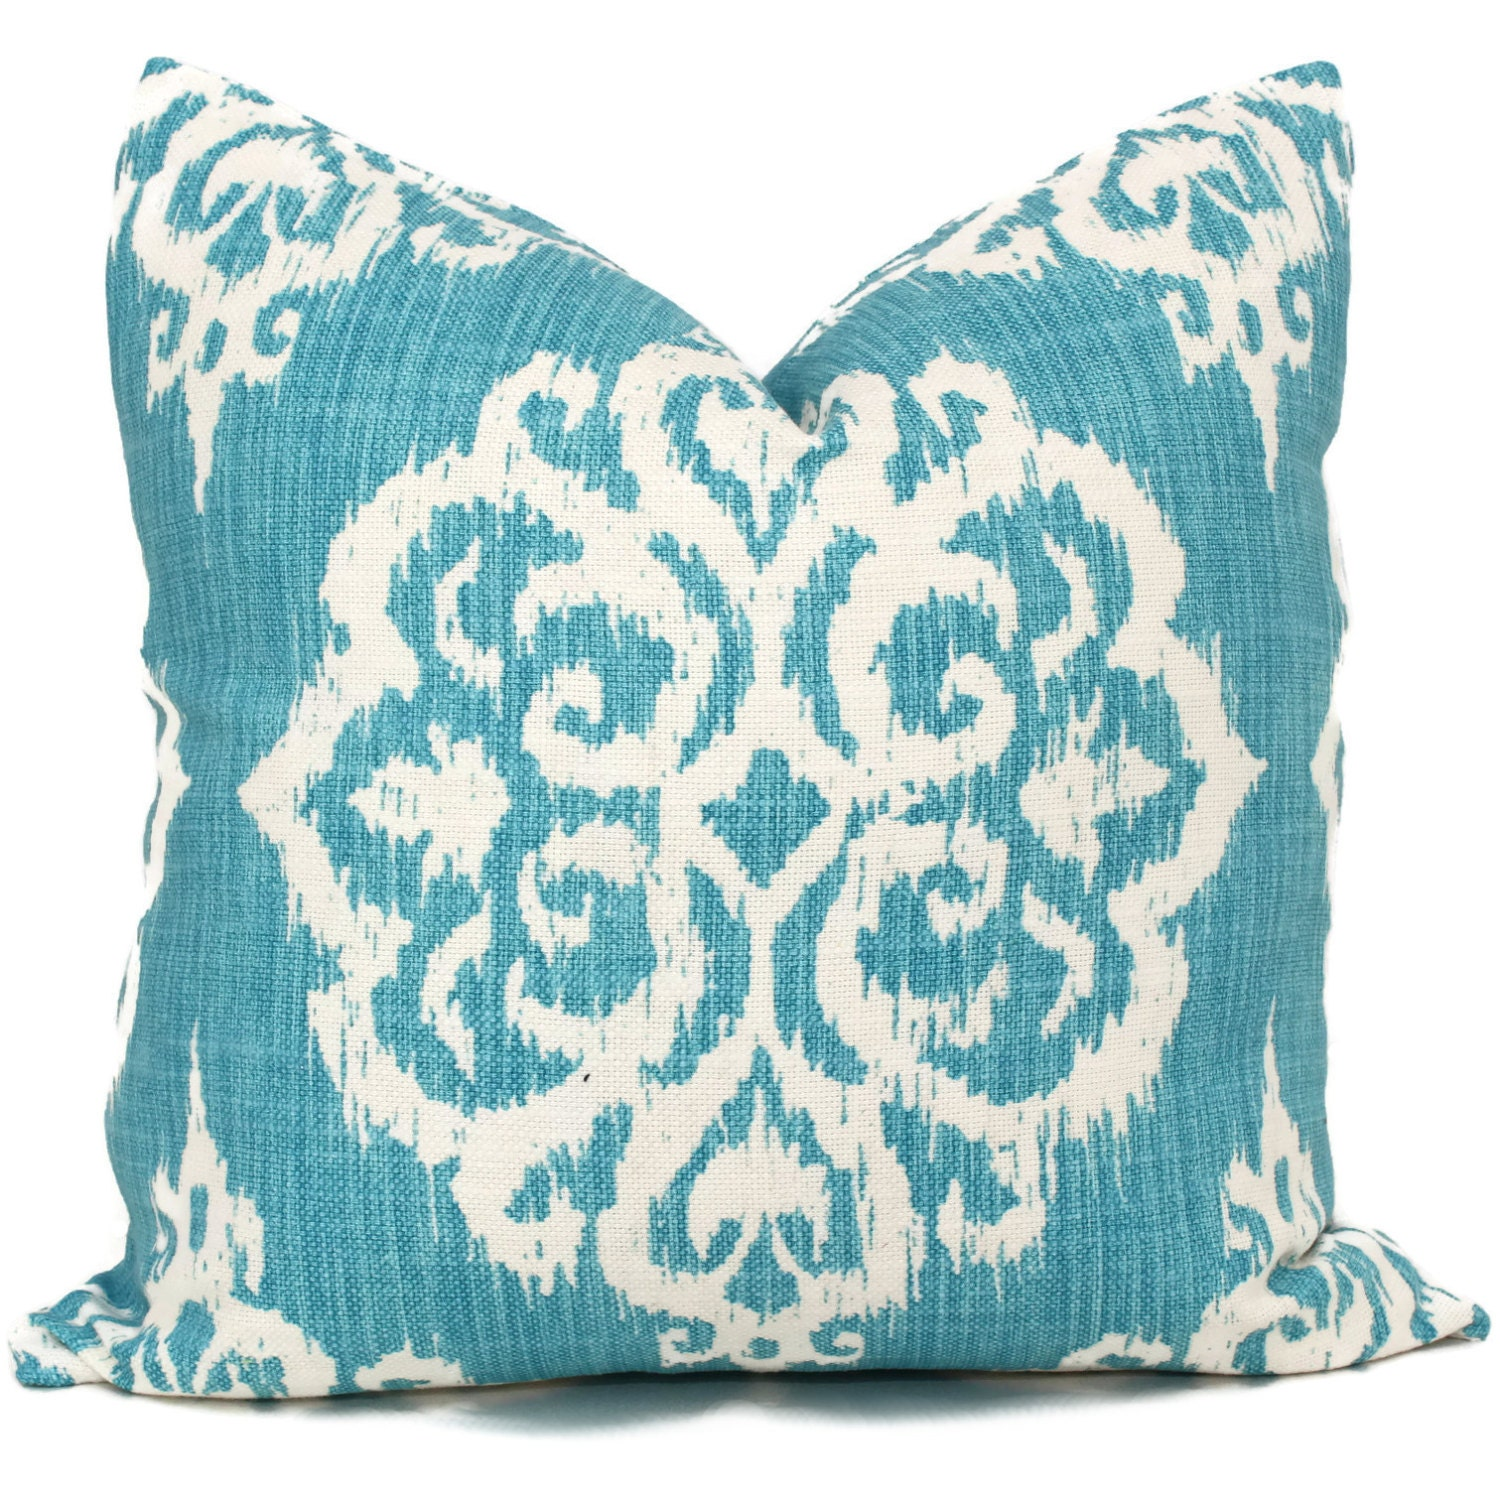 Decorative Pillows In Turquoise : Turquoise Suzani Decorative Pillow Cover 18x18 20x20 22x22